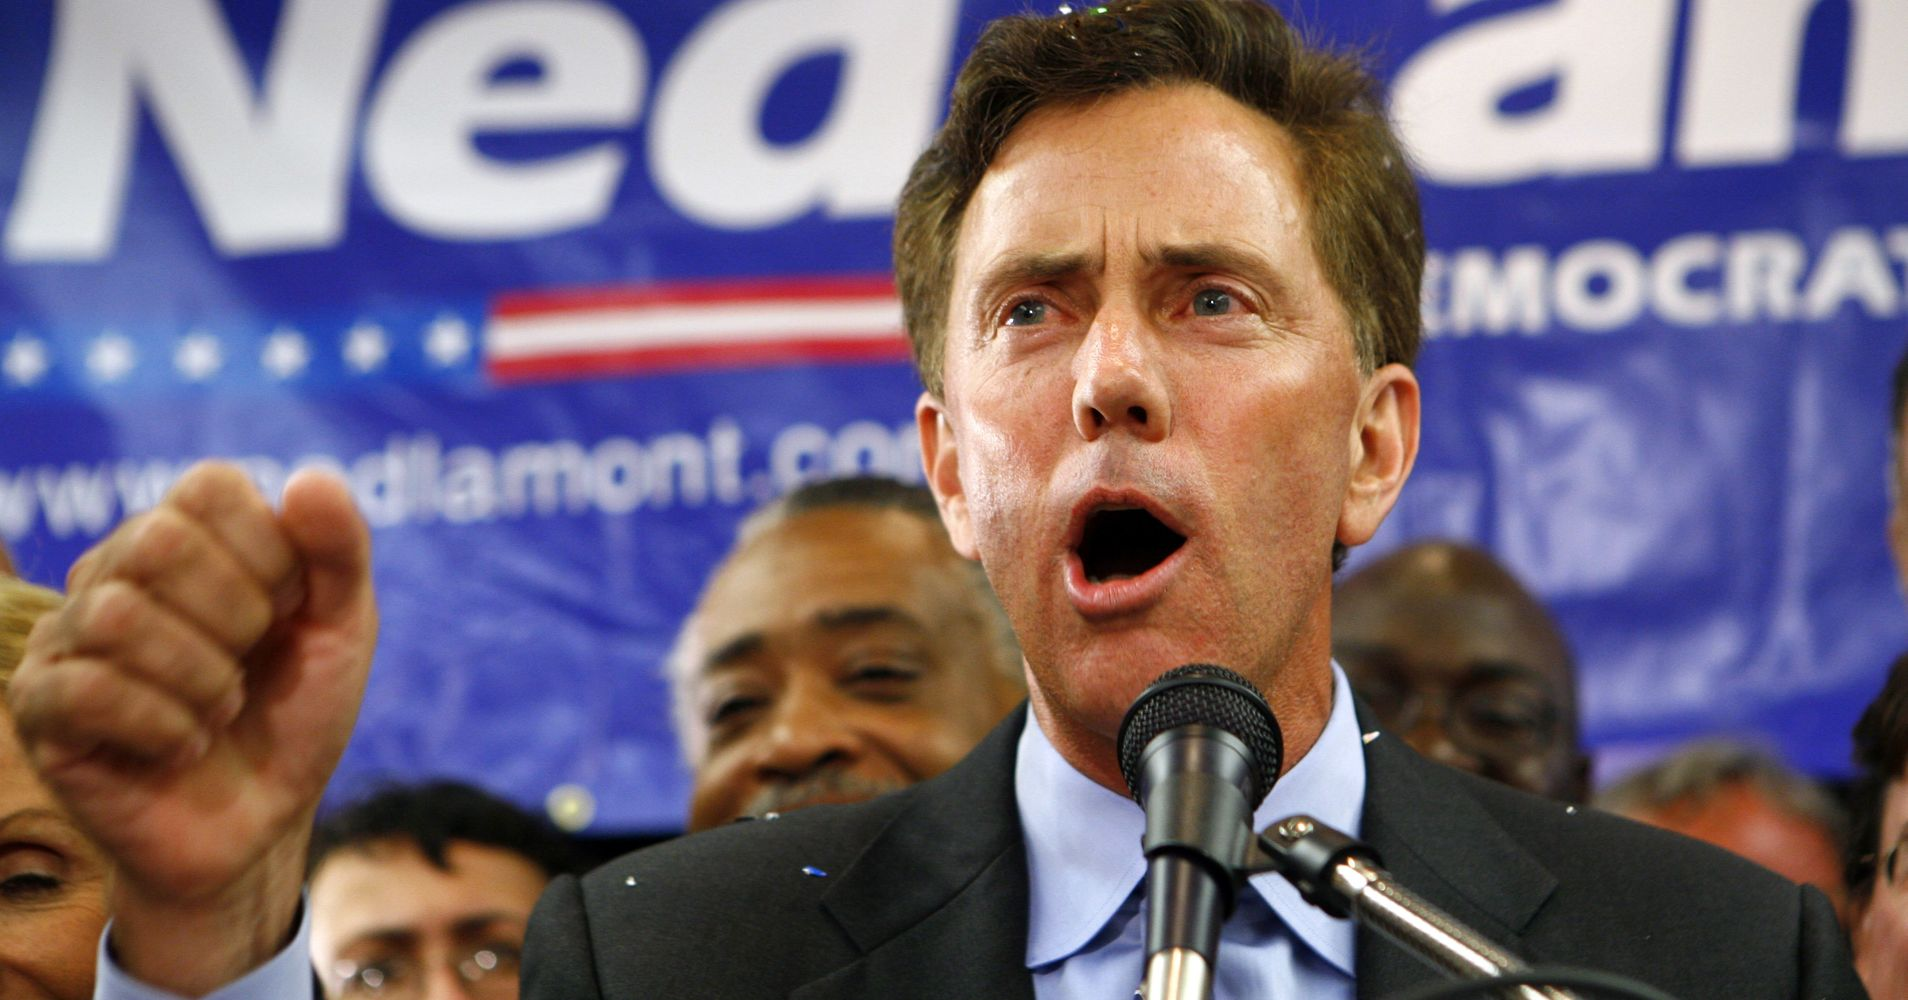 Ned Lamont Wins Democratic Nomination For Governor Of Connecticut